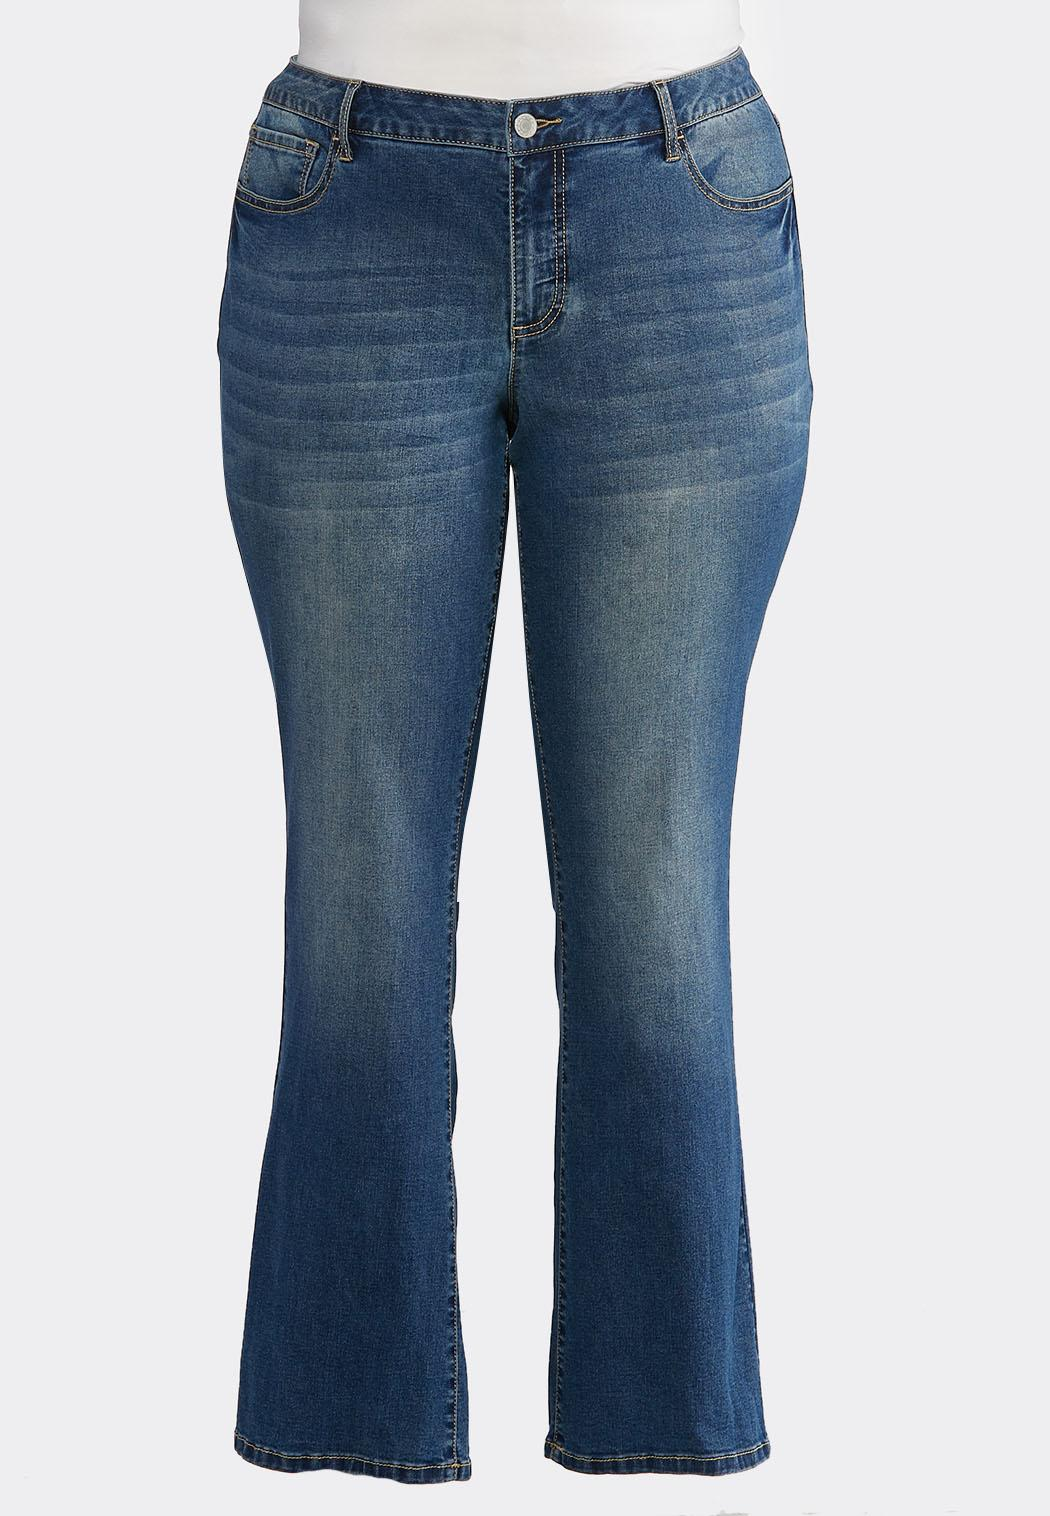 004331a40b2 Plus Size Slimming Bootcut Jeans Bootcut Cato Fashions